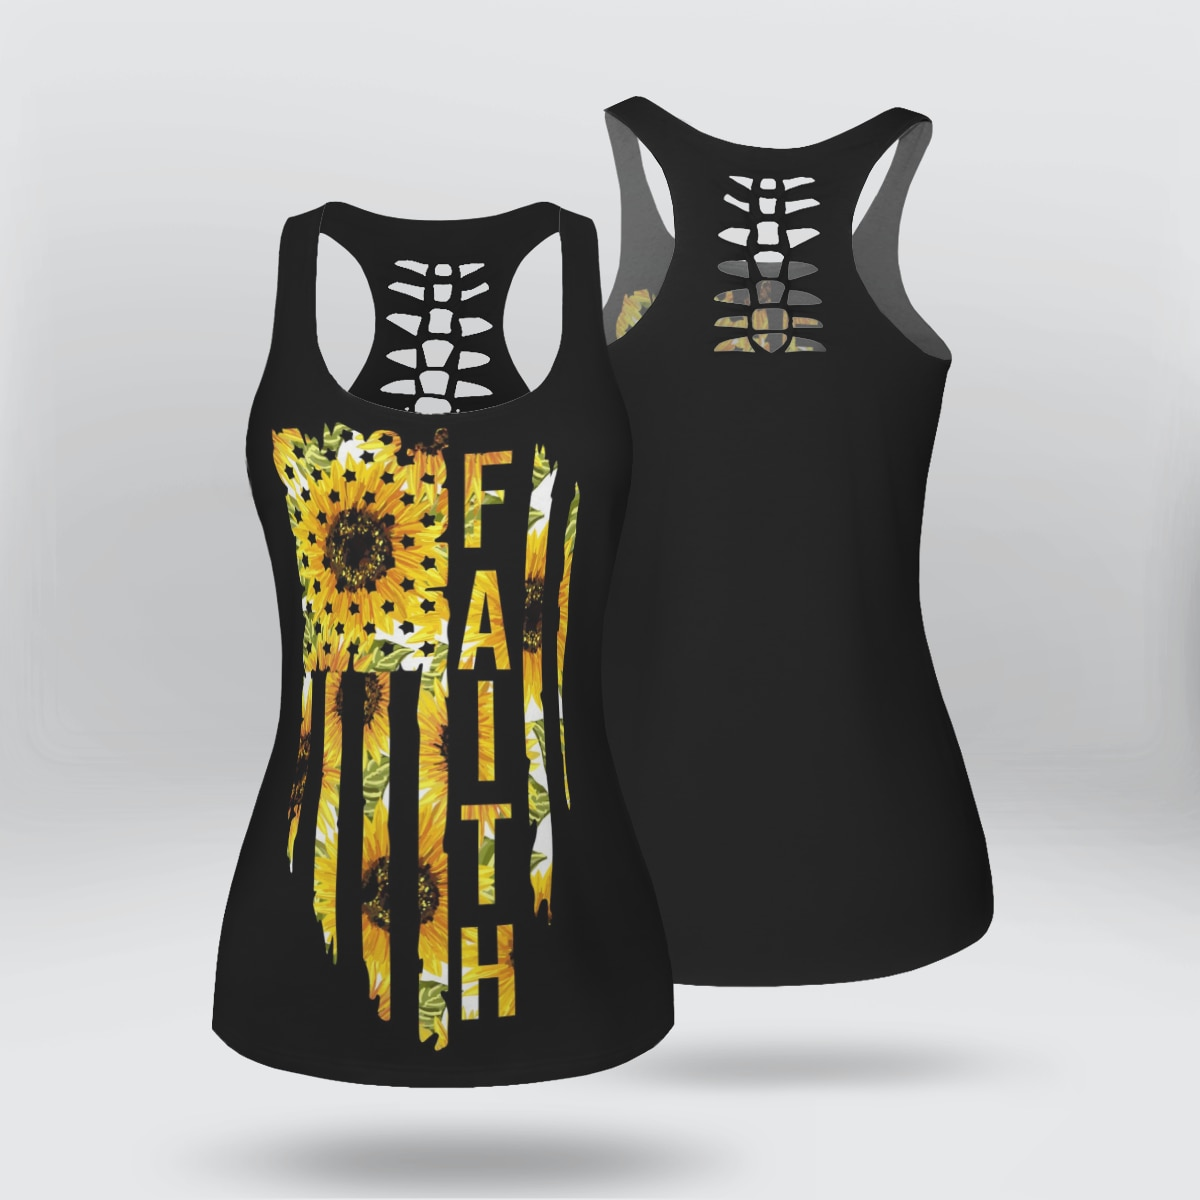 onseme women casual sleeveless t shirt yinyang cat print 3d tank tops cool flower skull tanks back hollow out vest casual tees Faith 3D Printed Hollow Out Tank Top women for Girl Summer Casual Tees Vest Top Funny Tank Top